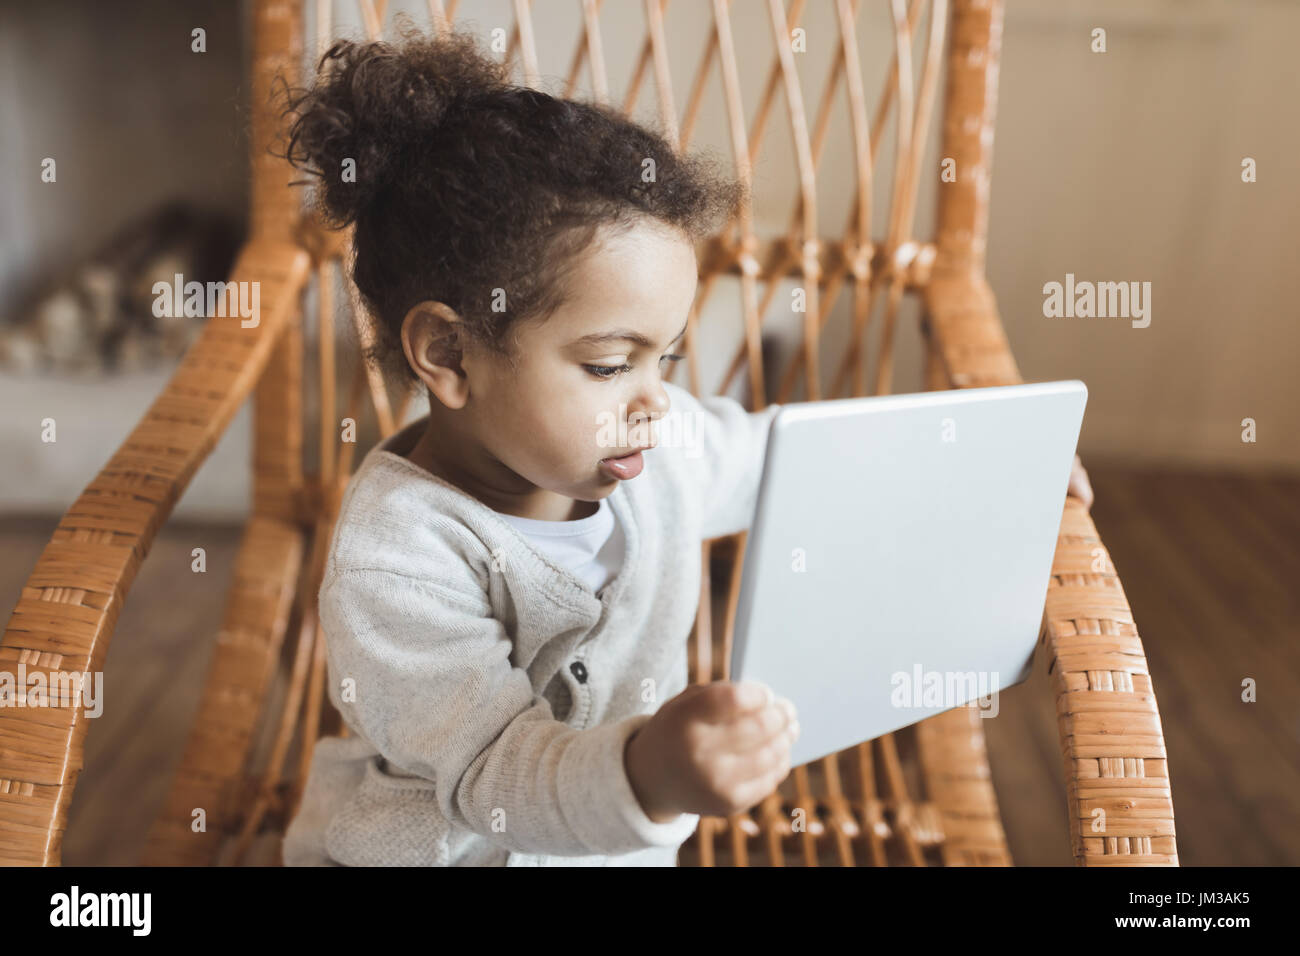 Adorable petit african american girl using digital tablet et assis sur un fauteuil à bascule à la maison Photo Stock